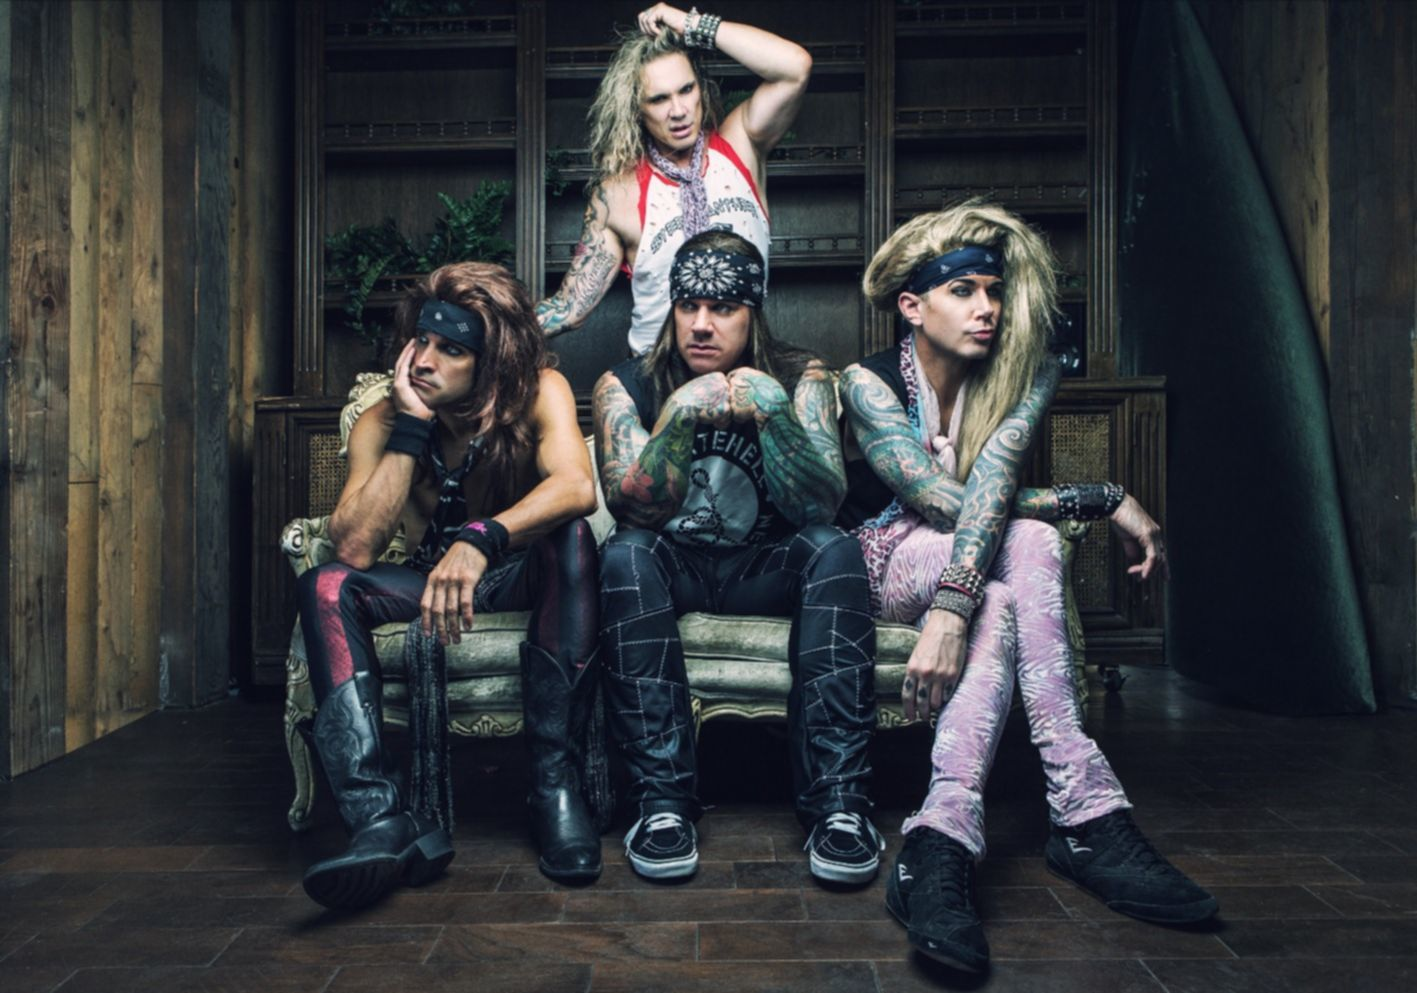 STEEL_PANTHER_Couch (photo by David Jackson)small press